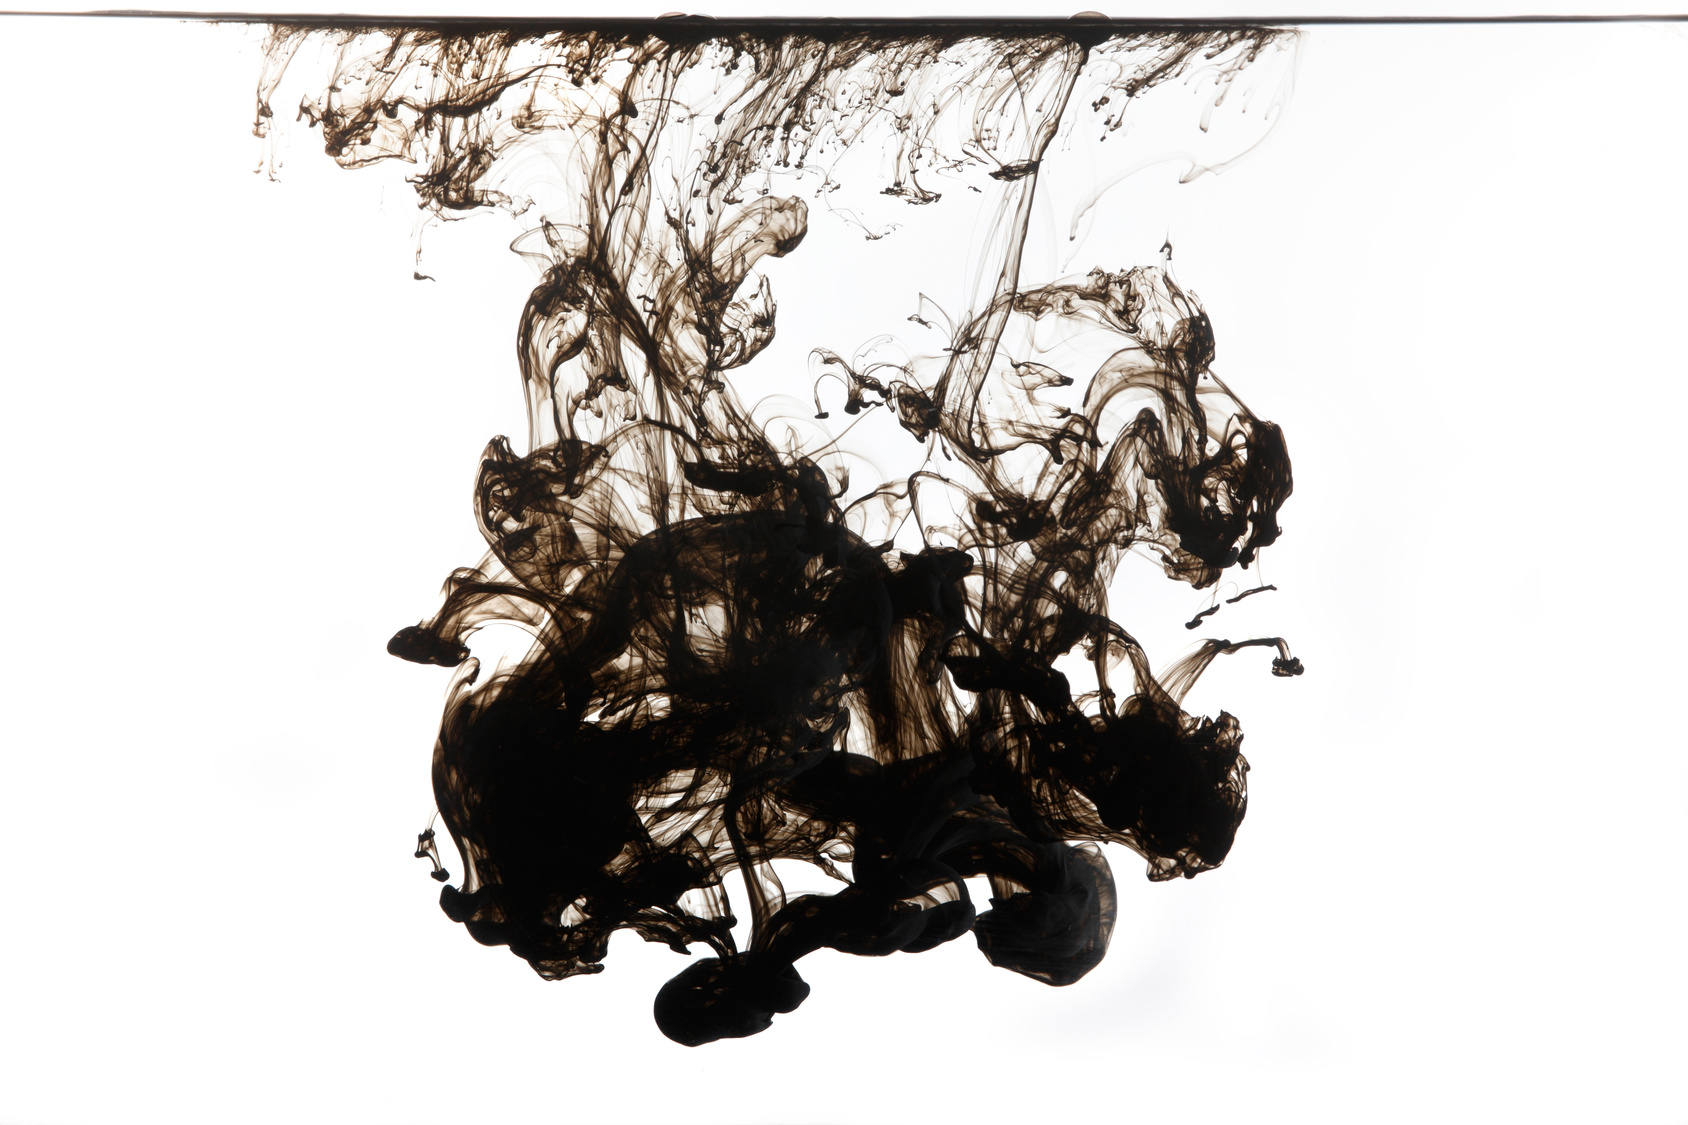 Experiment With Squid Ink on Water Is 3 Experiments For Kids